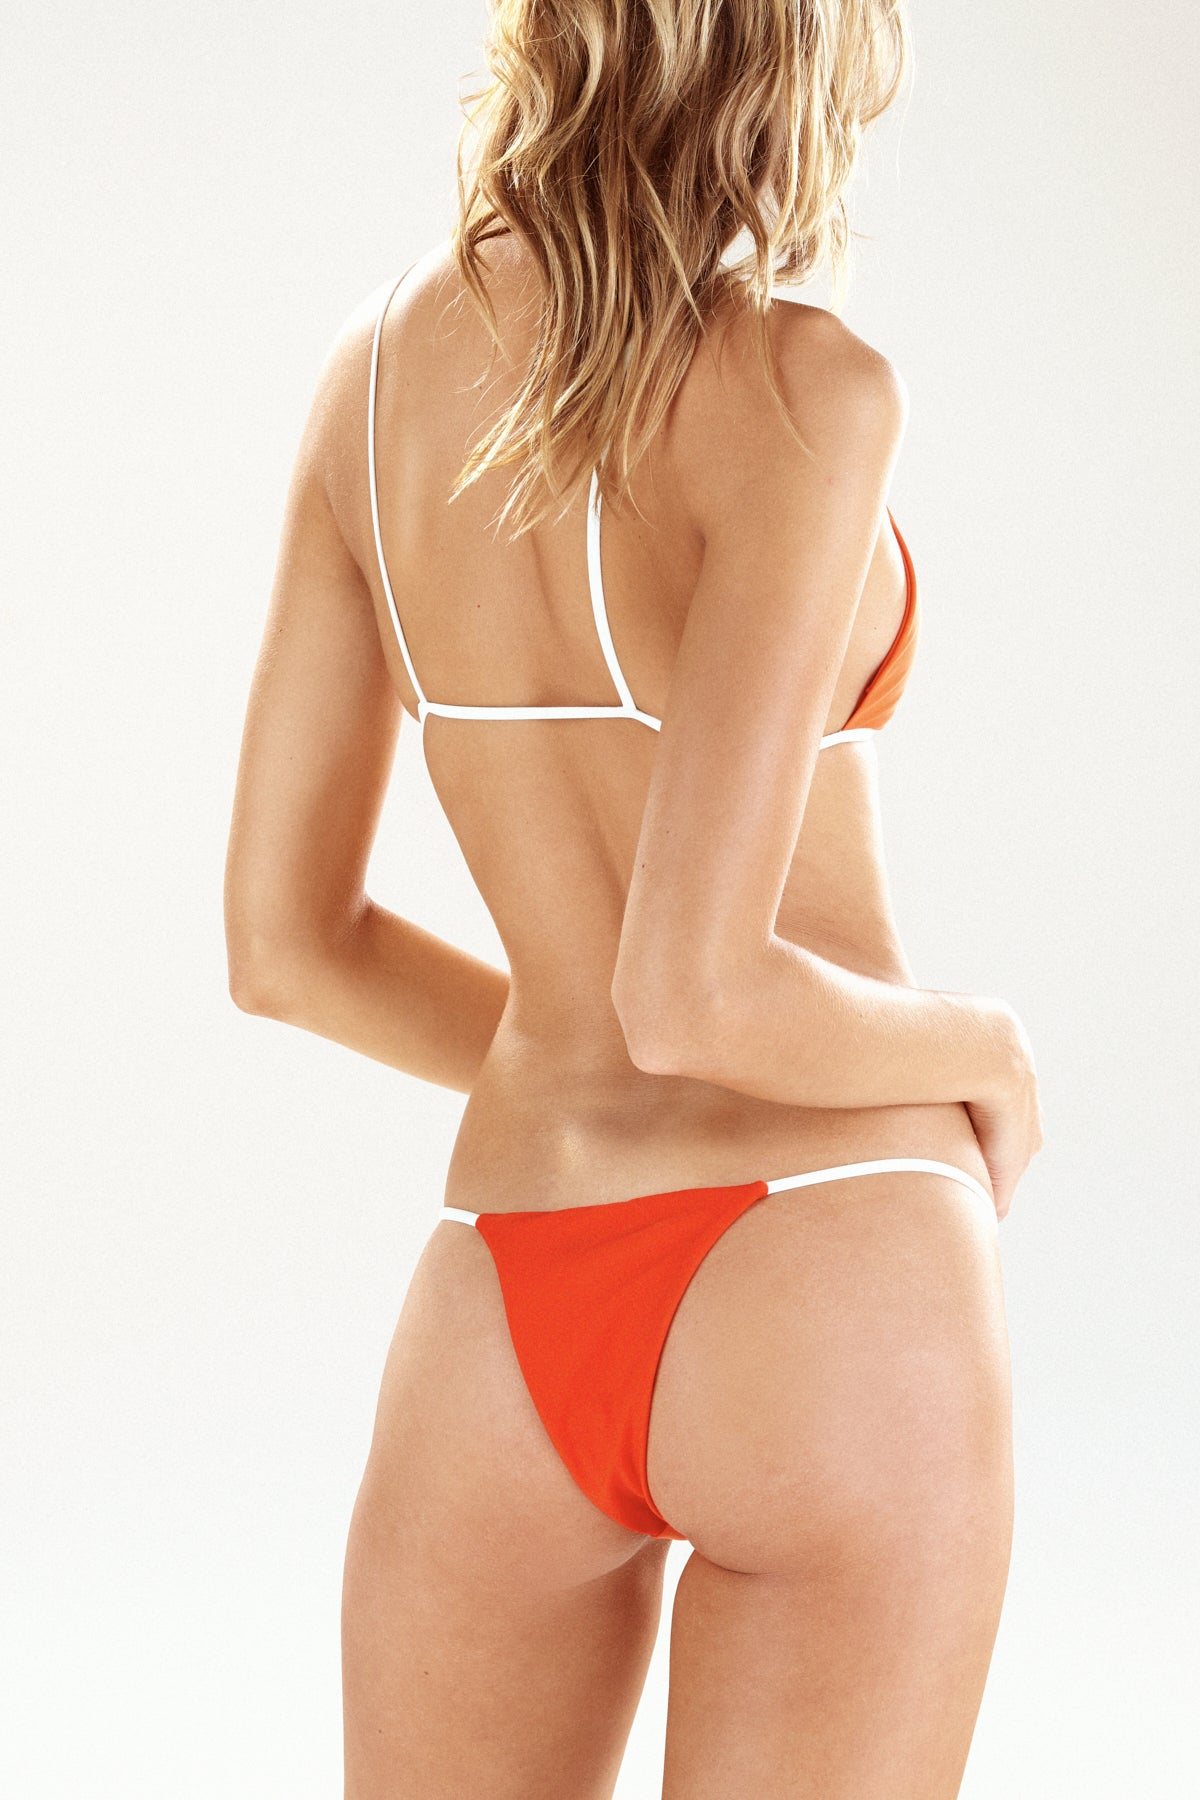 Back view of the Cayman bikini bottom in tangerine